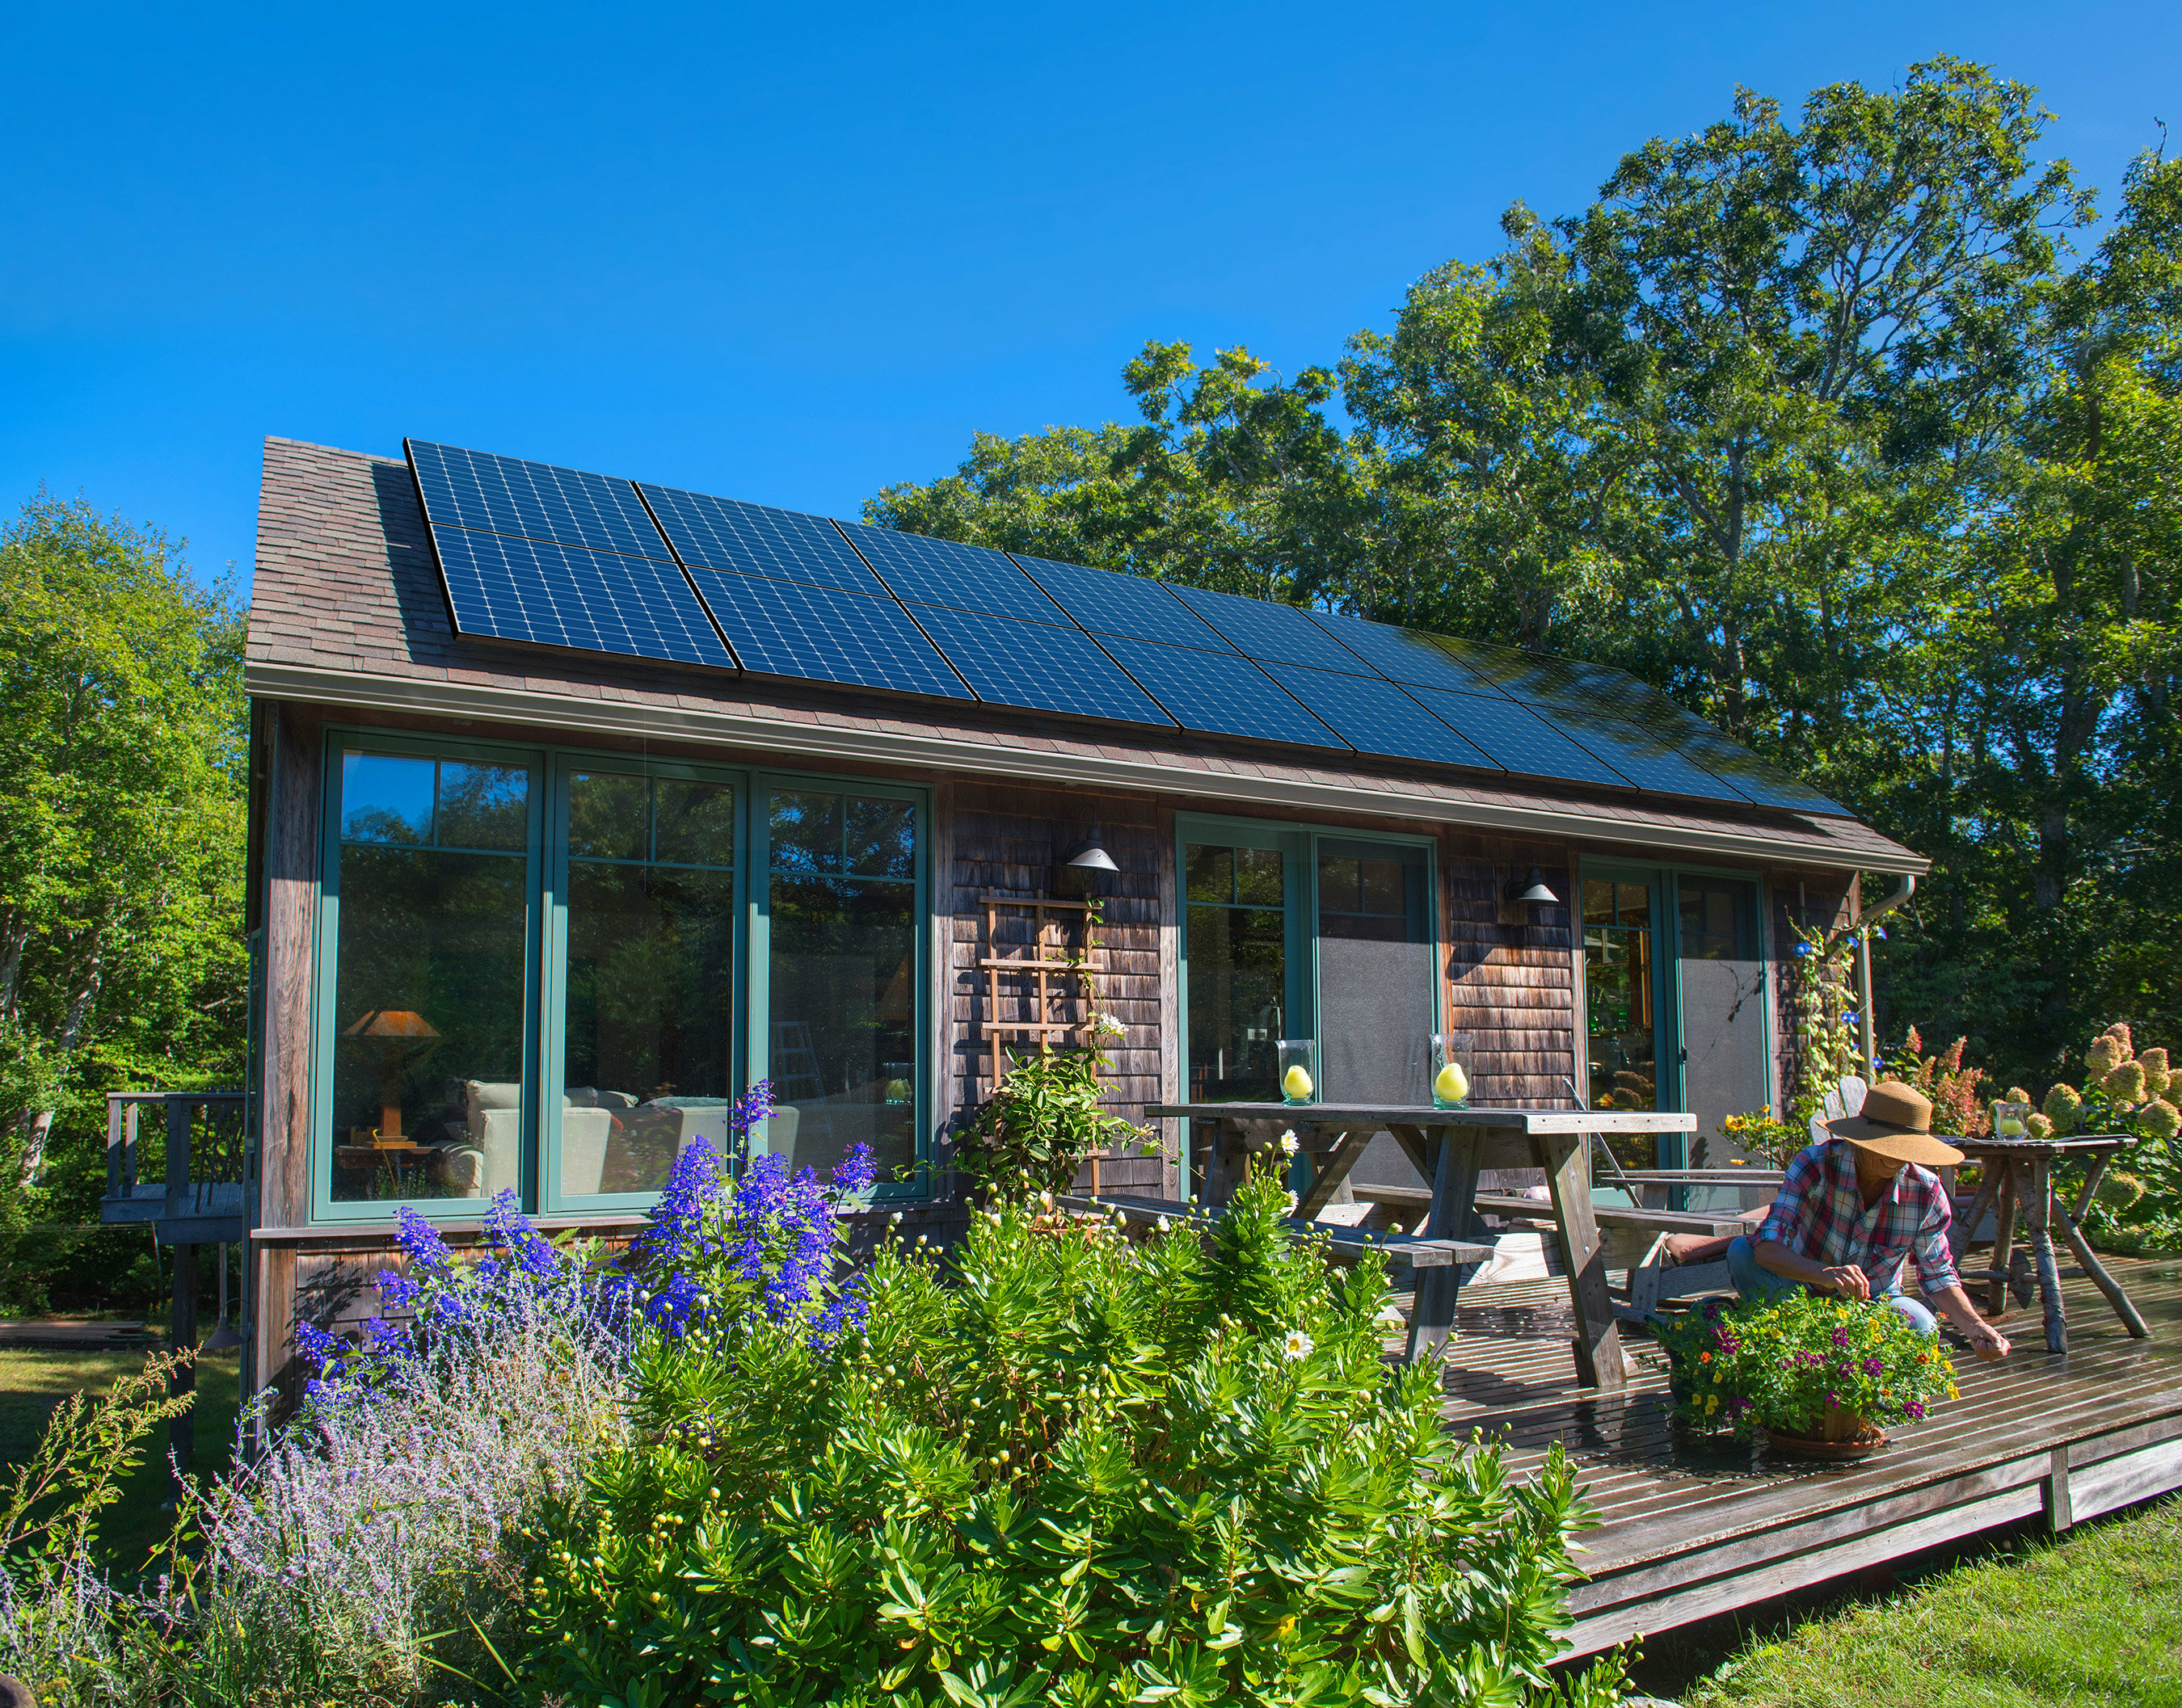 Approximately 500 solar power systems are operating on Martha's Vineyard. South Mountain Company has installed about 250 for residential, commercial, and institutional customers on the island.